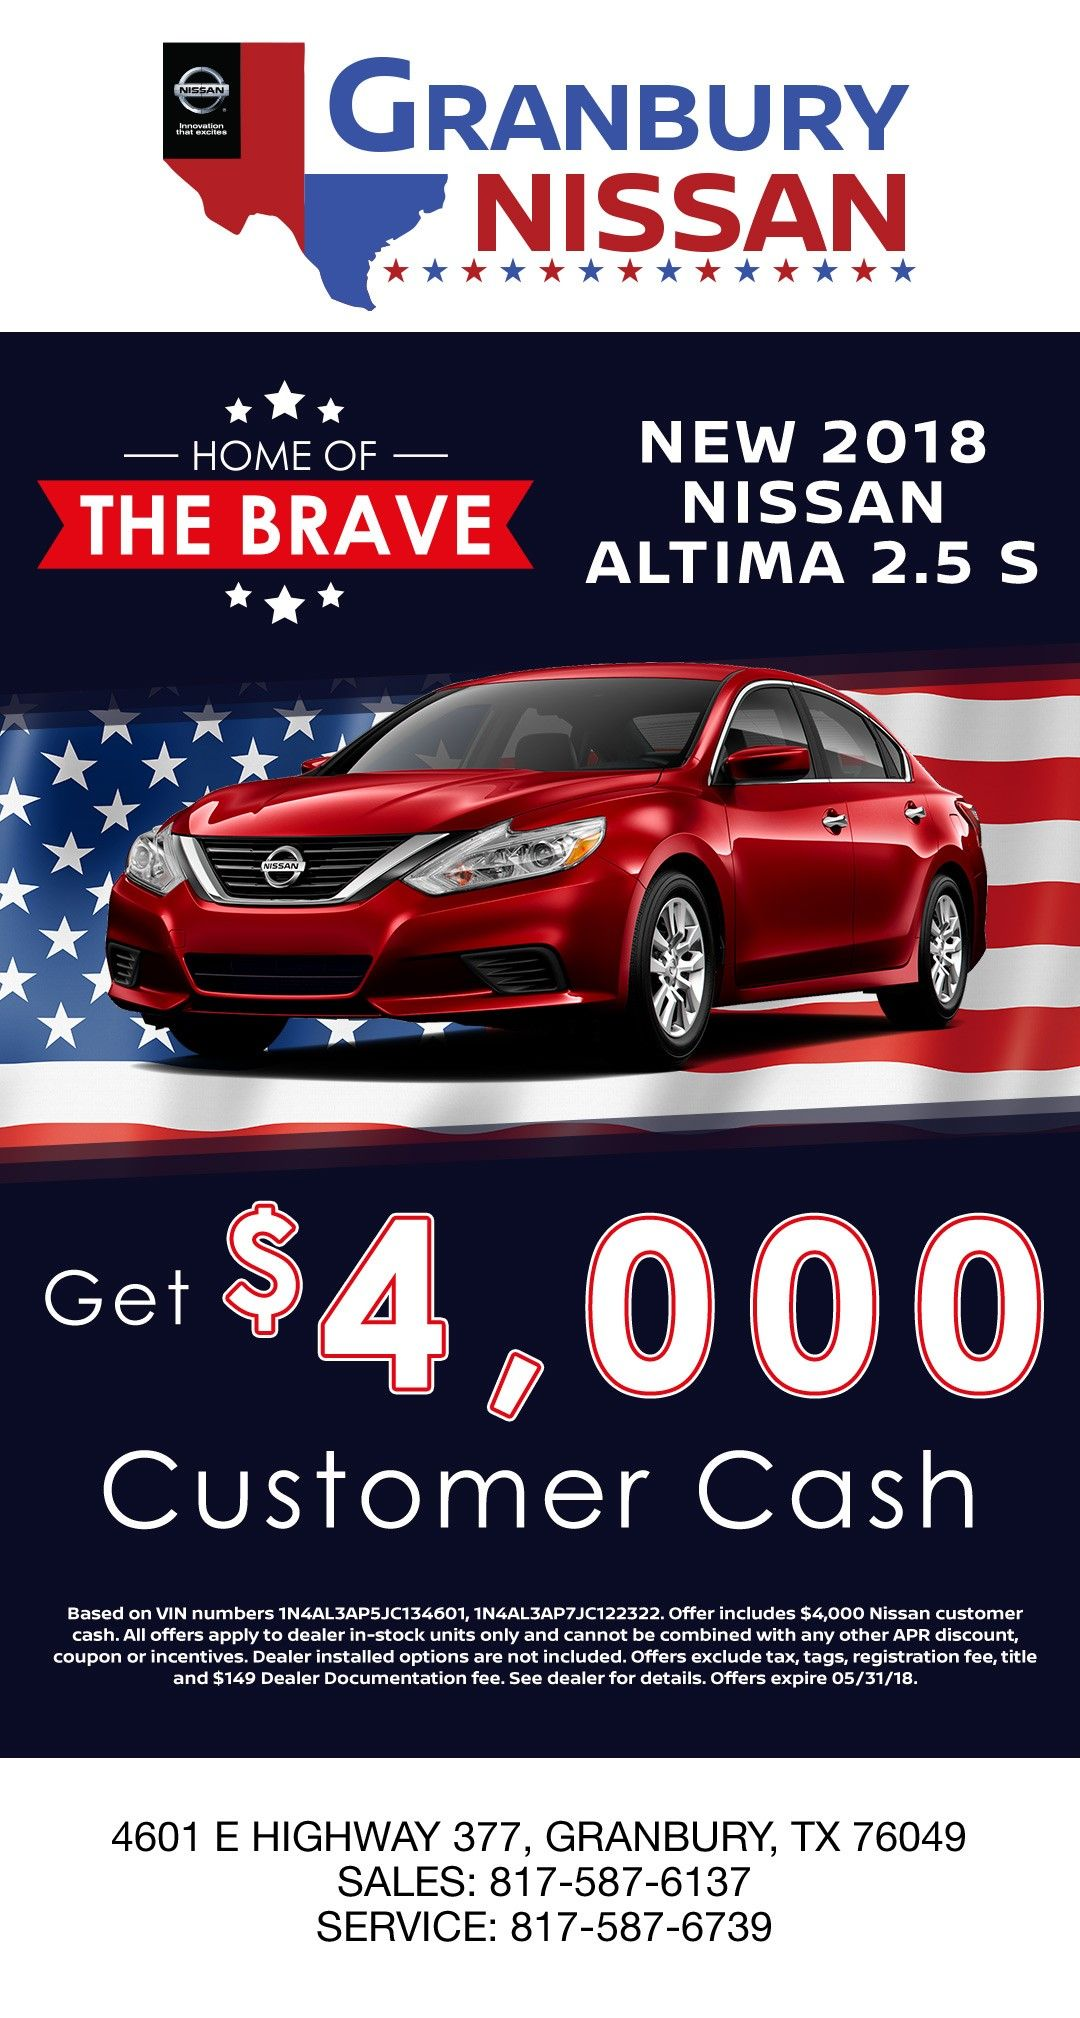 Take Advantage Of This Great Deal Now At Granbury Nissan Nissan